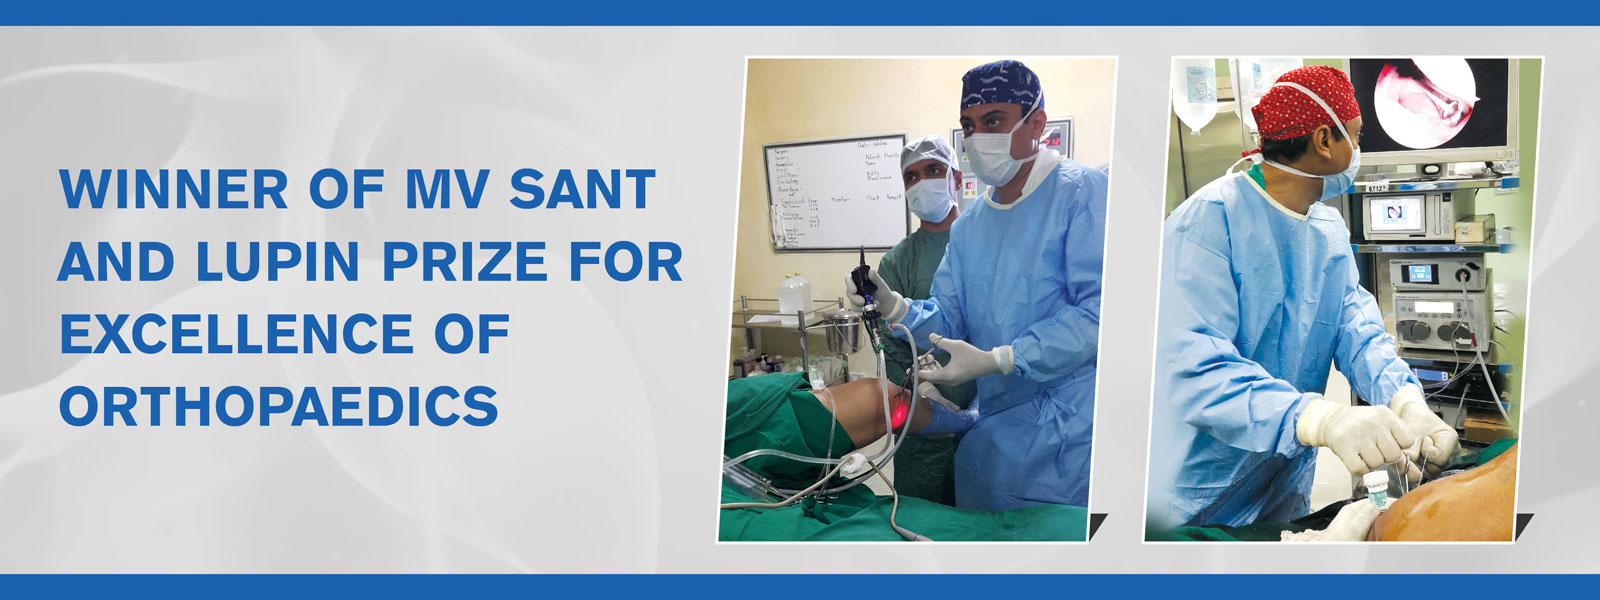 Winner Of MV Sant and Lupin Prize For Excellence of Orthopaedics